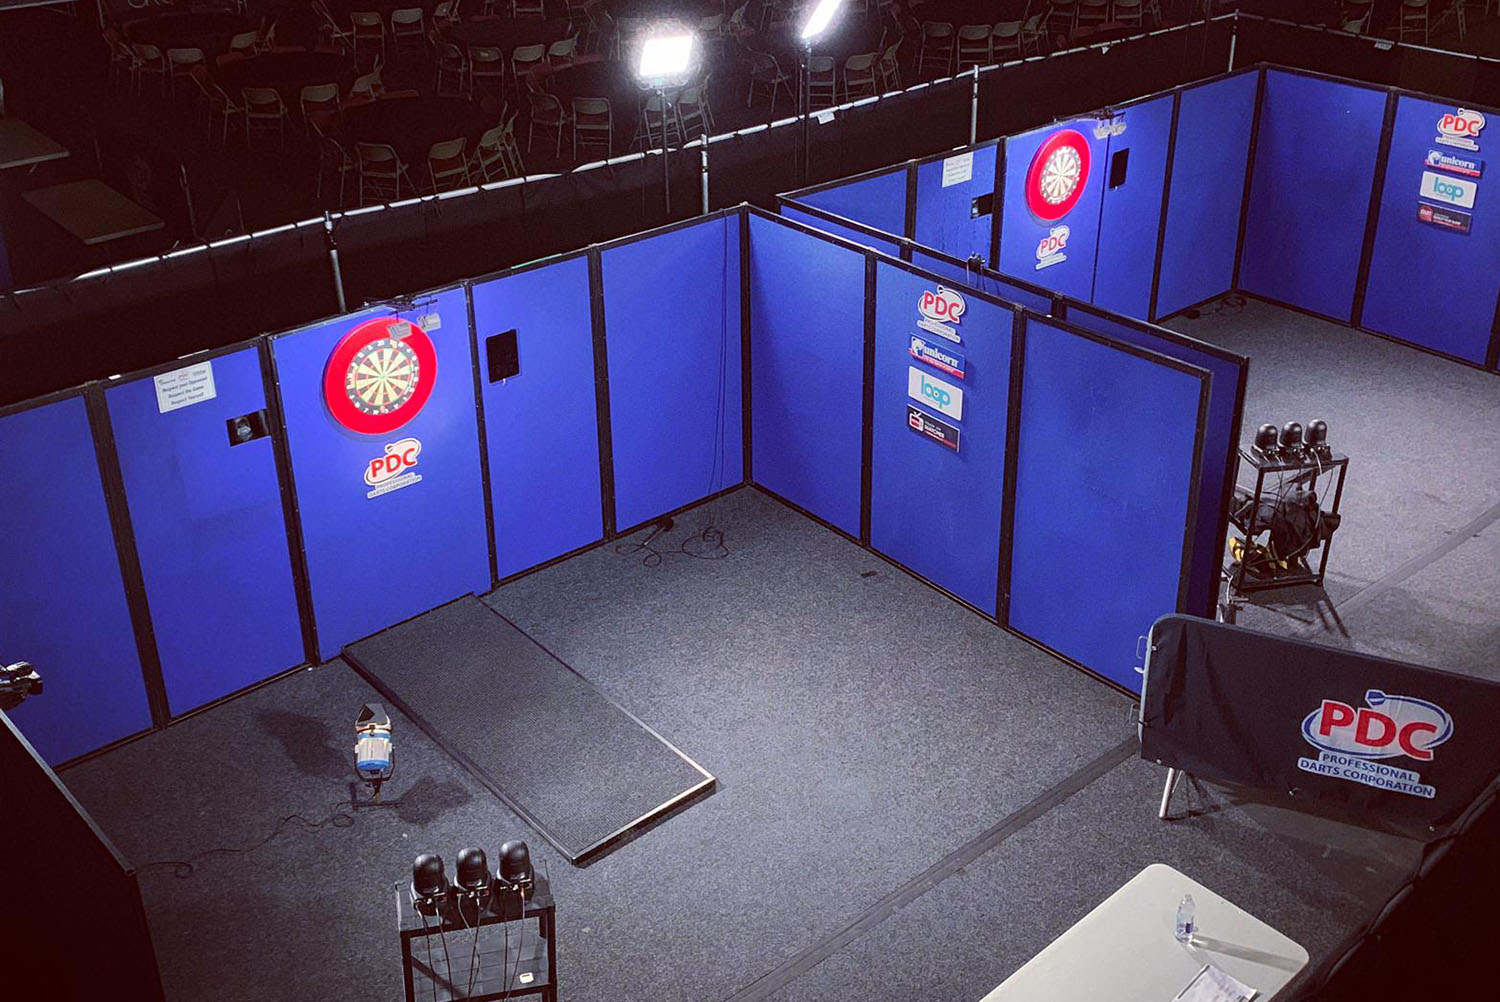 PDC Pro Tour streaming board rig